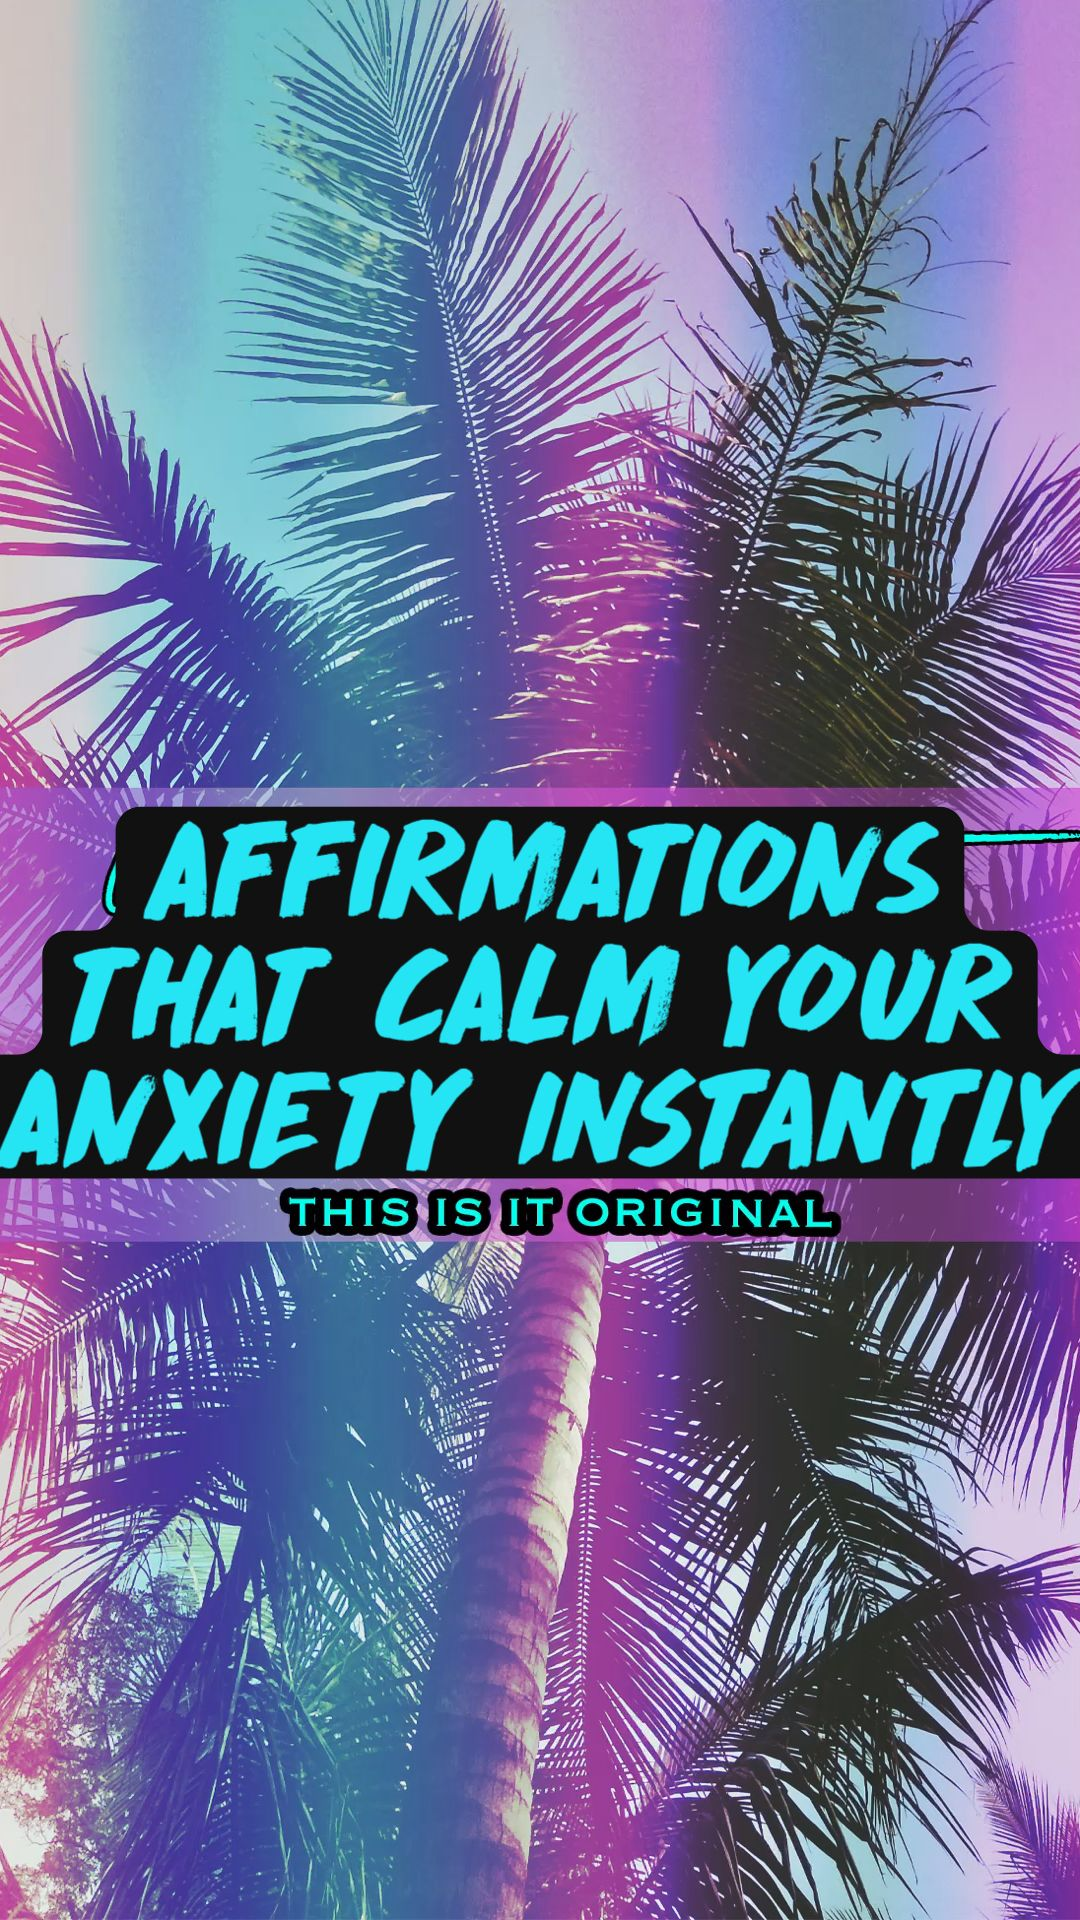 AFFIRMATIONS THAT CALM YOUR ANXIETY INSTANTLY - IPHONE WALLPAPERS